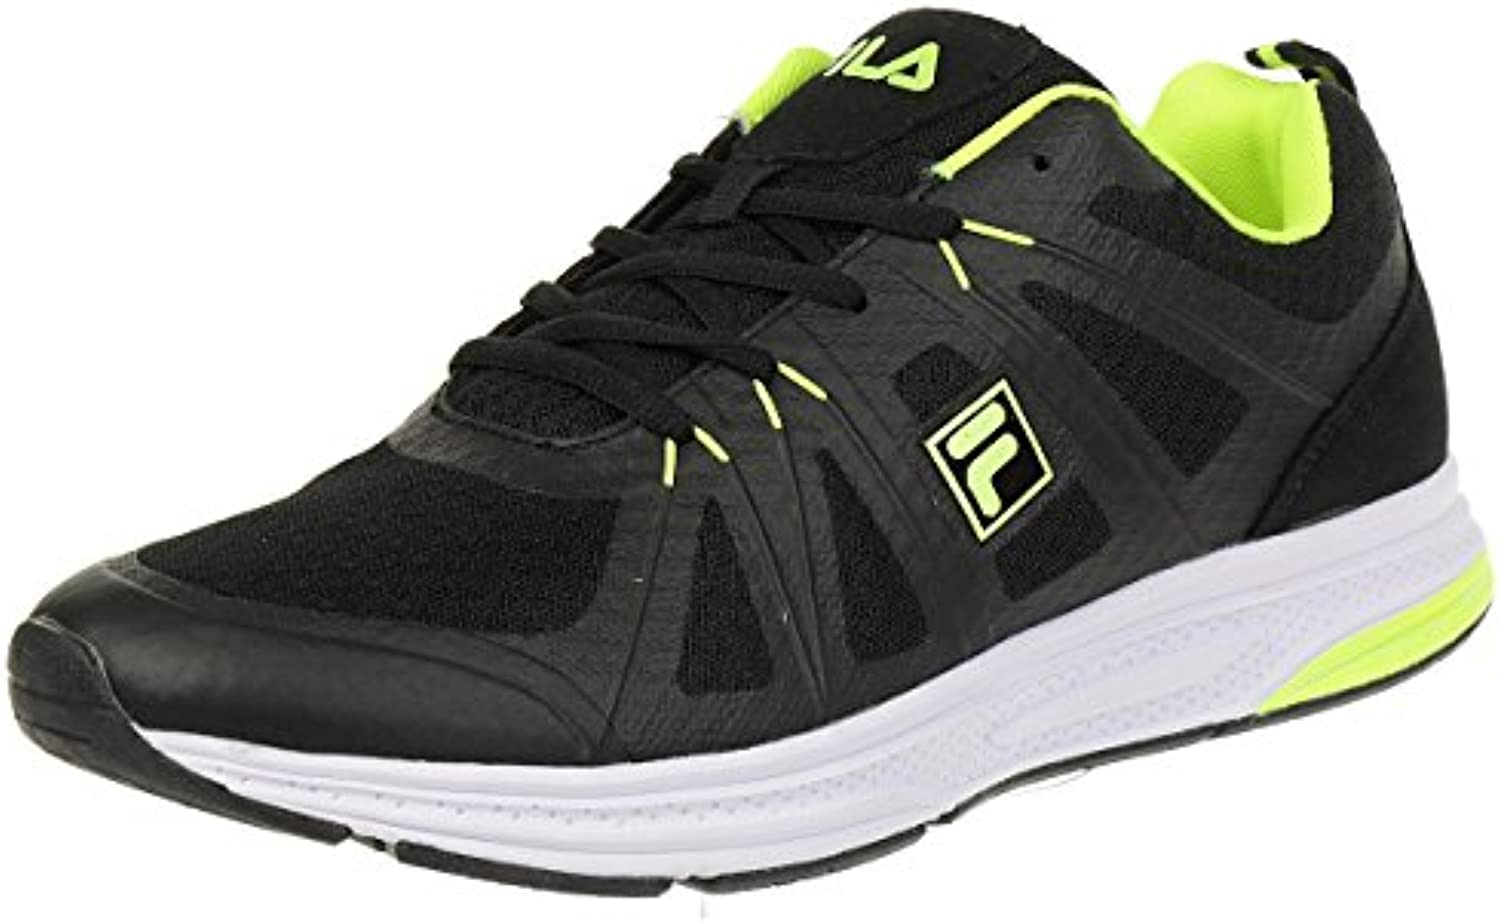 Fila Colt Low Run Men Running Trainers Sneakers Fitness Black, tamaño de Zapato:EUR 46